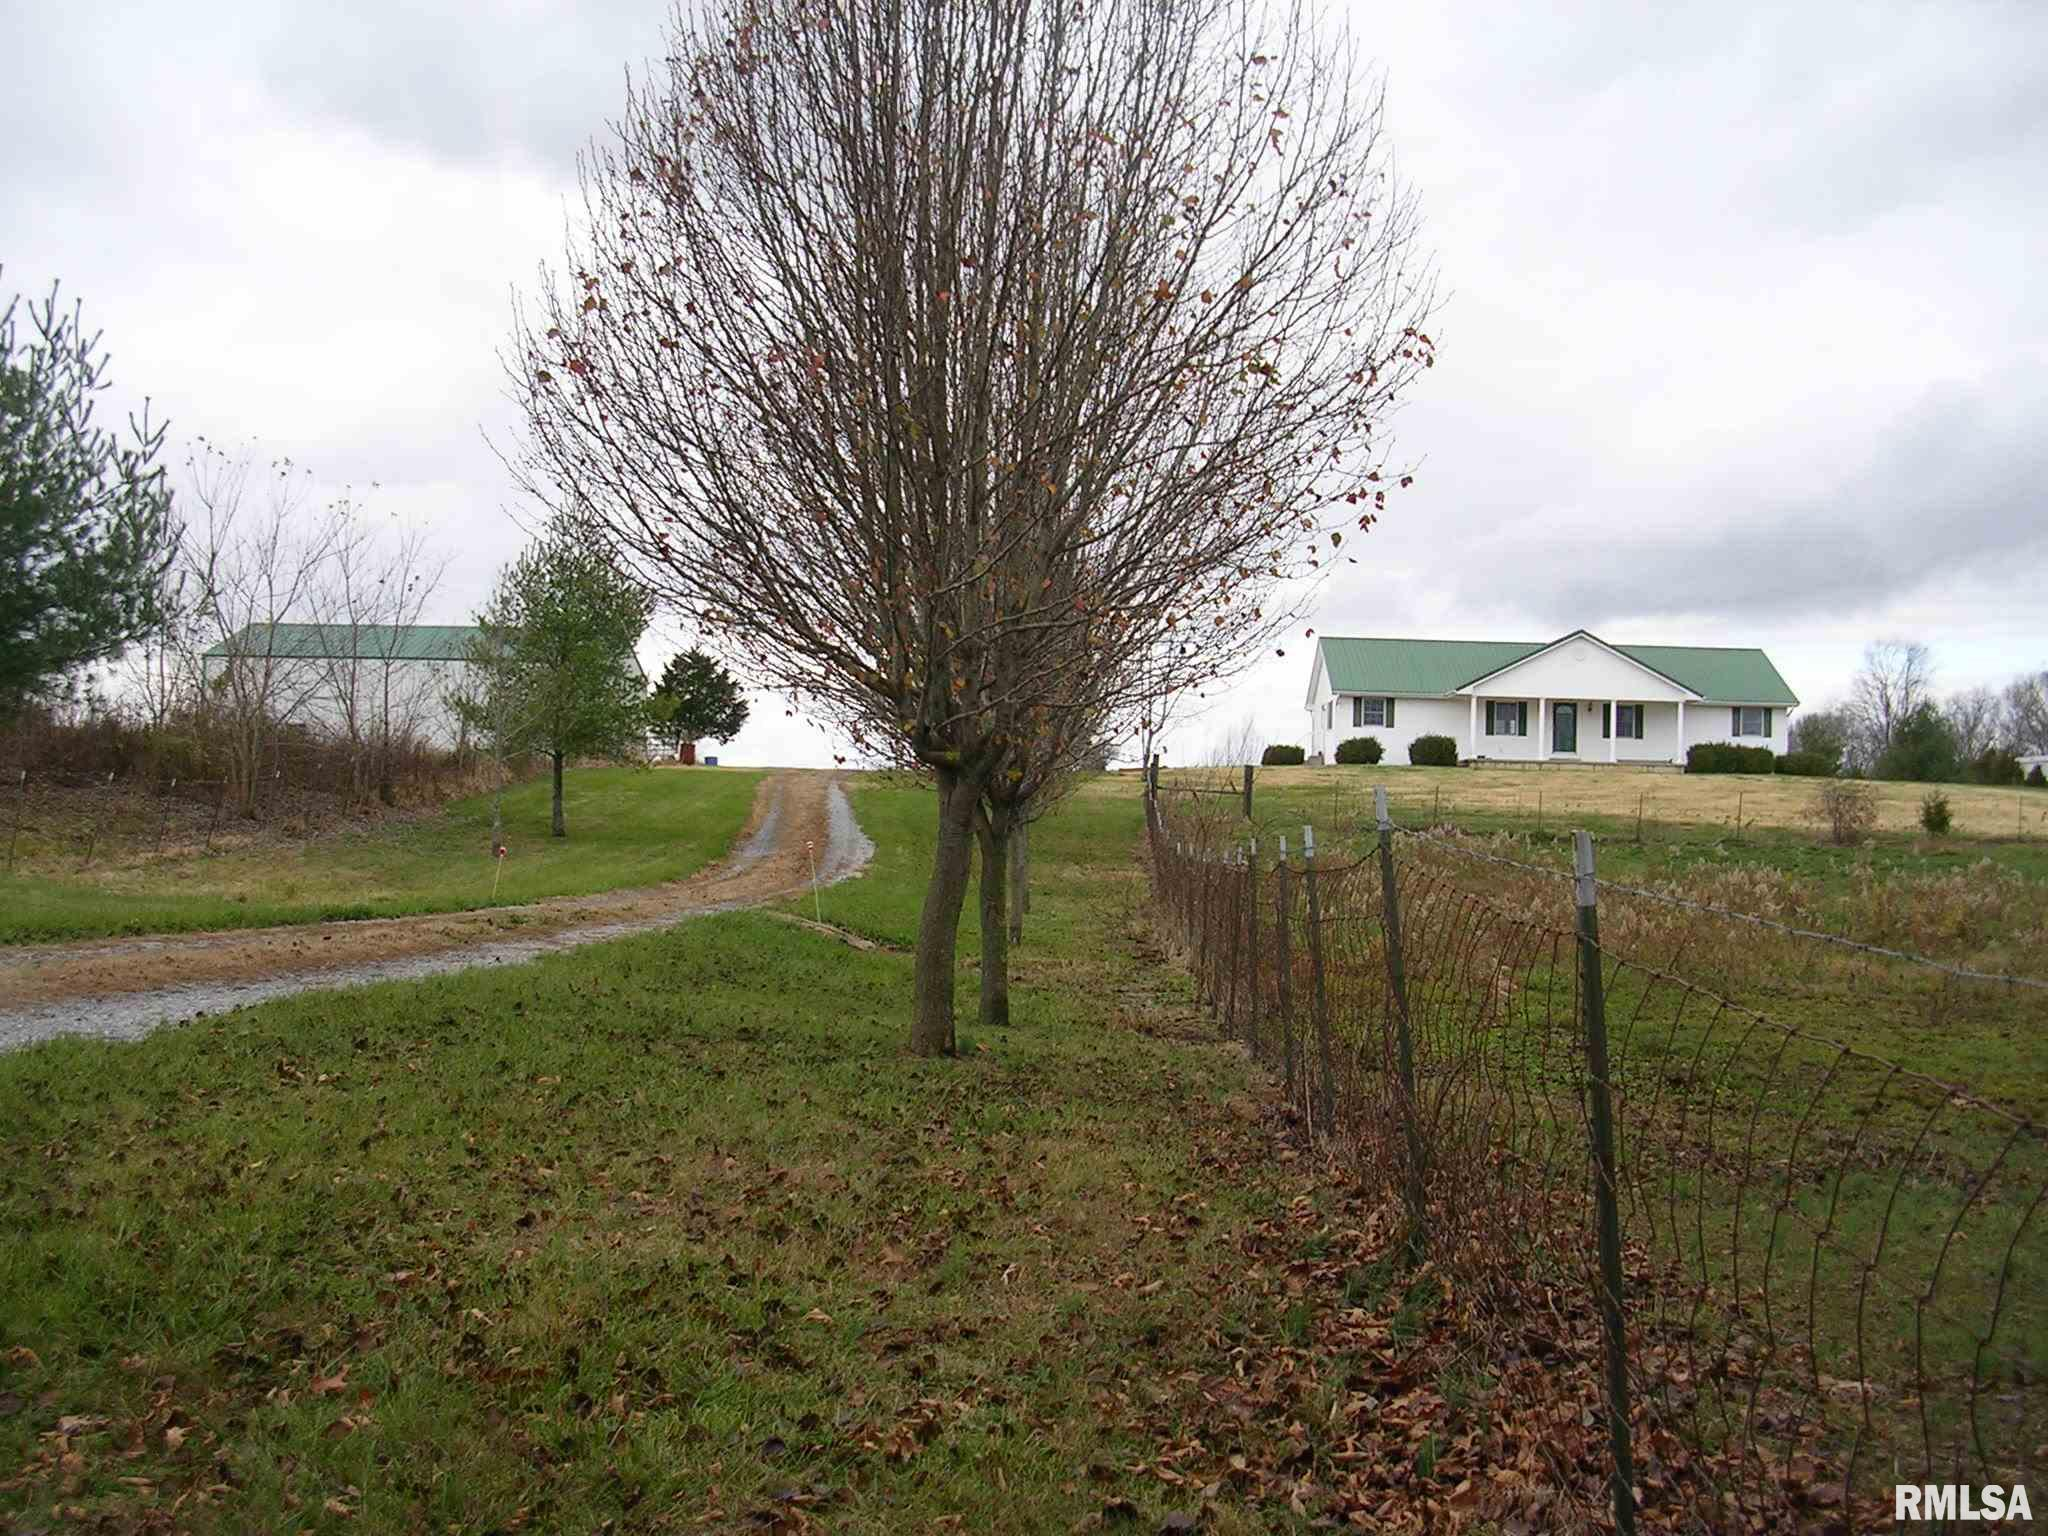 765 TURNER Property Photo - Creal Springs, IL real estate listing